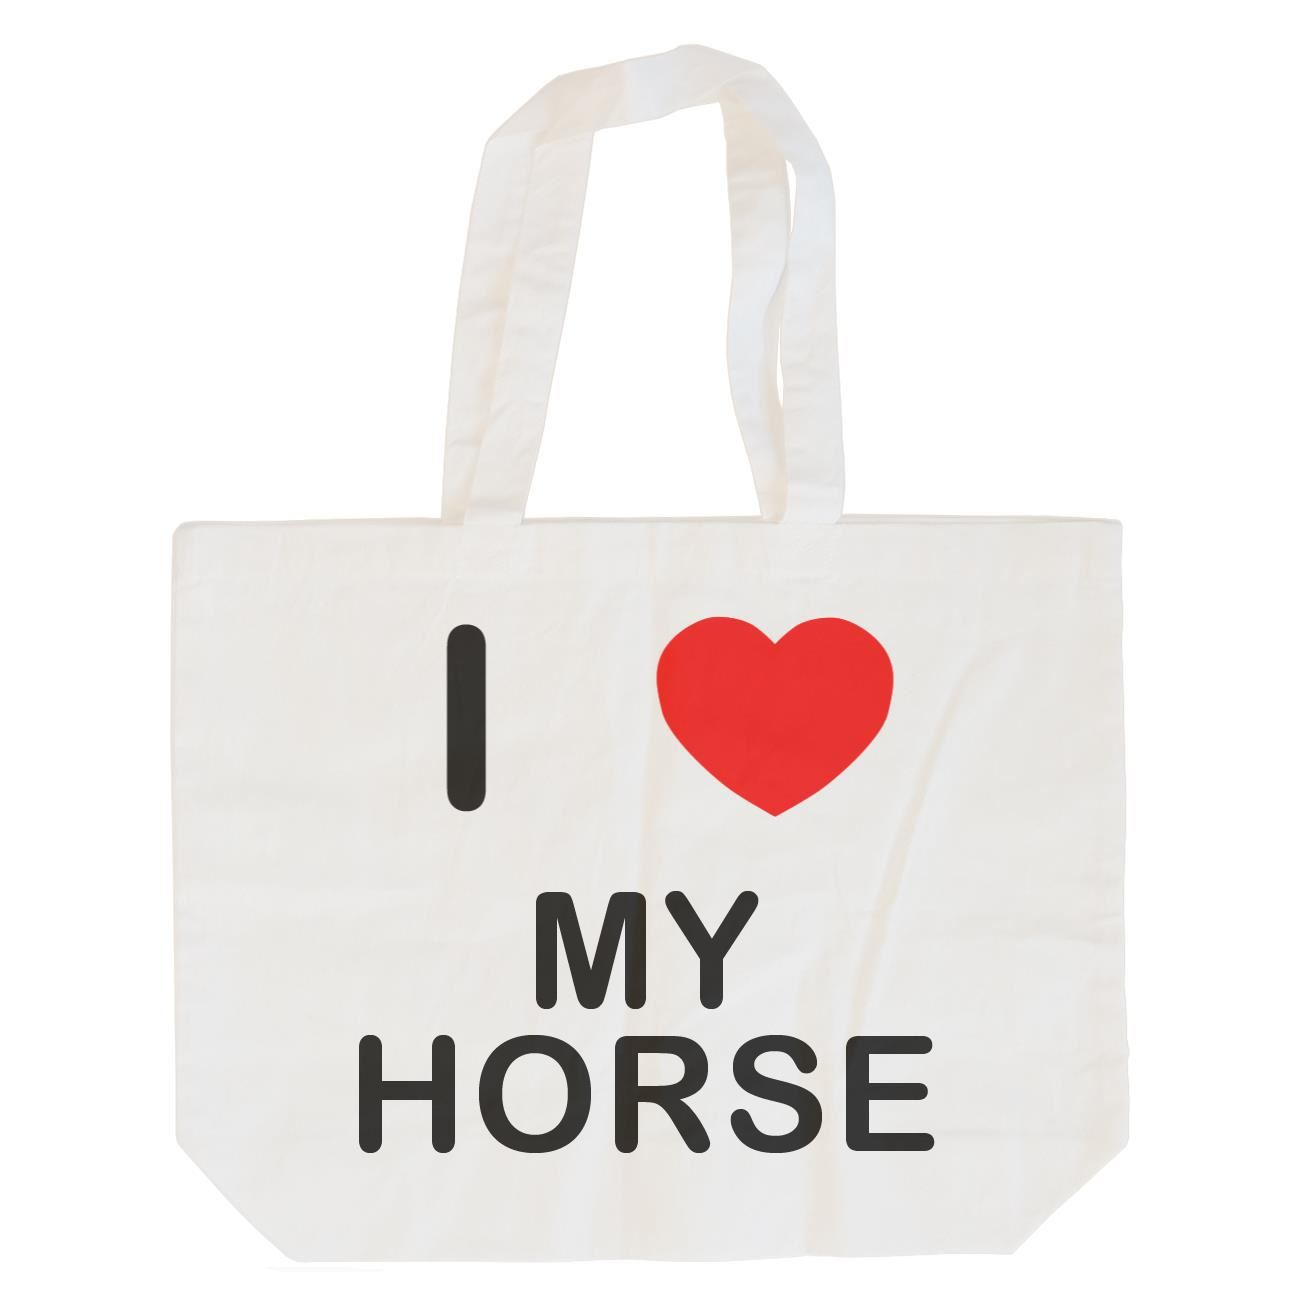 I Love My Horse - Cotton Bag | Size choice Tote, Shopper or Sling